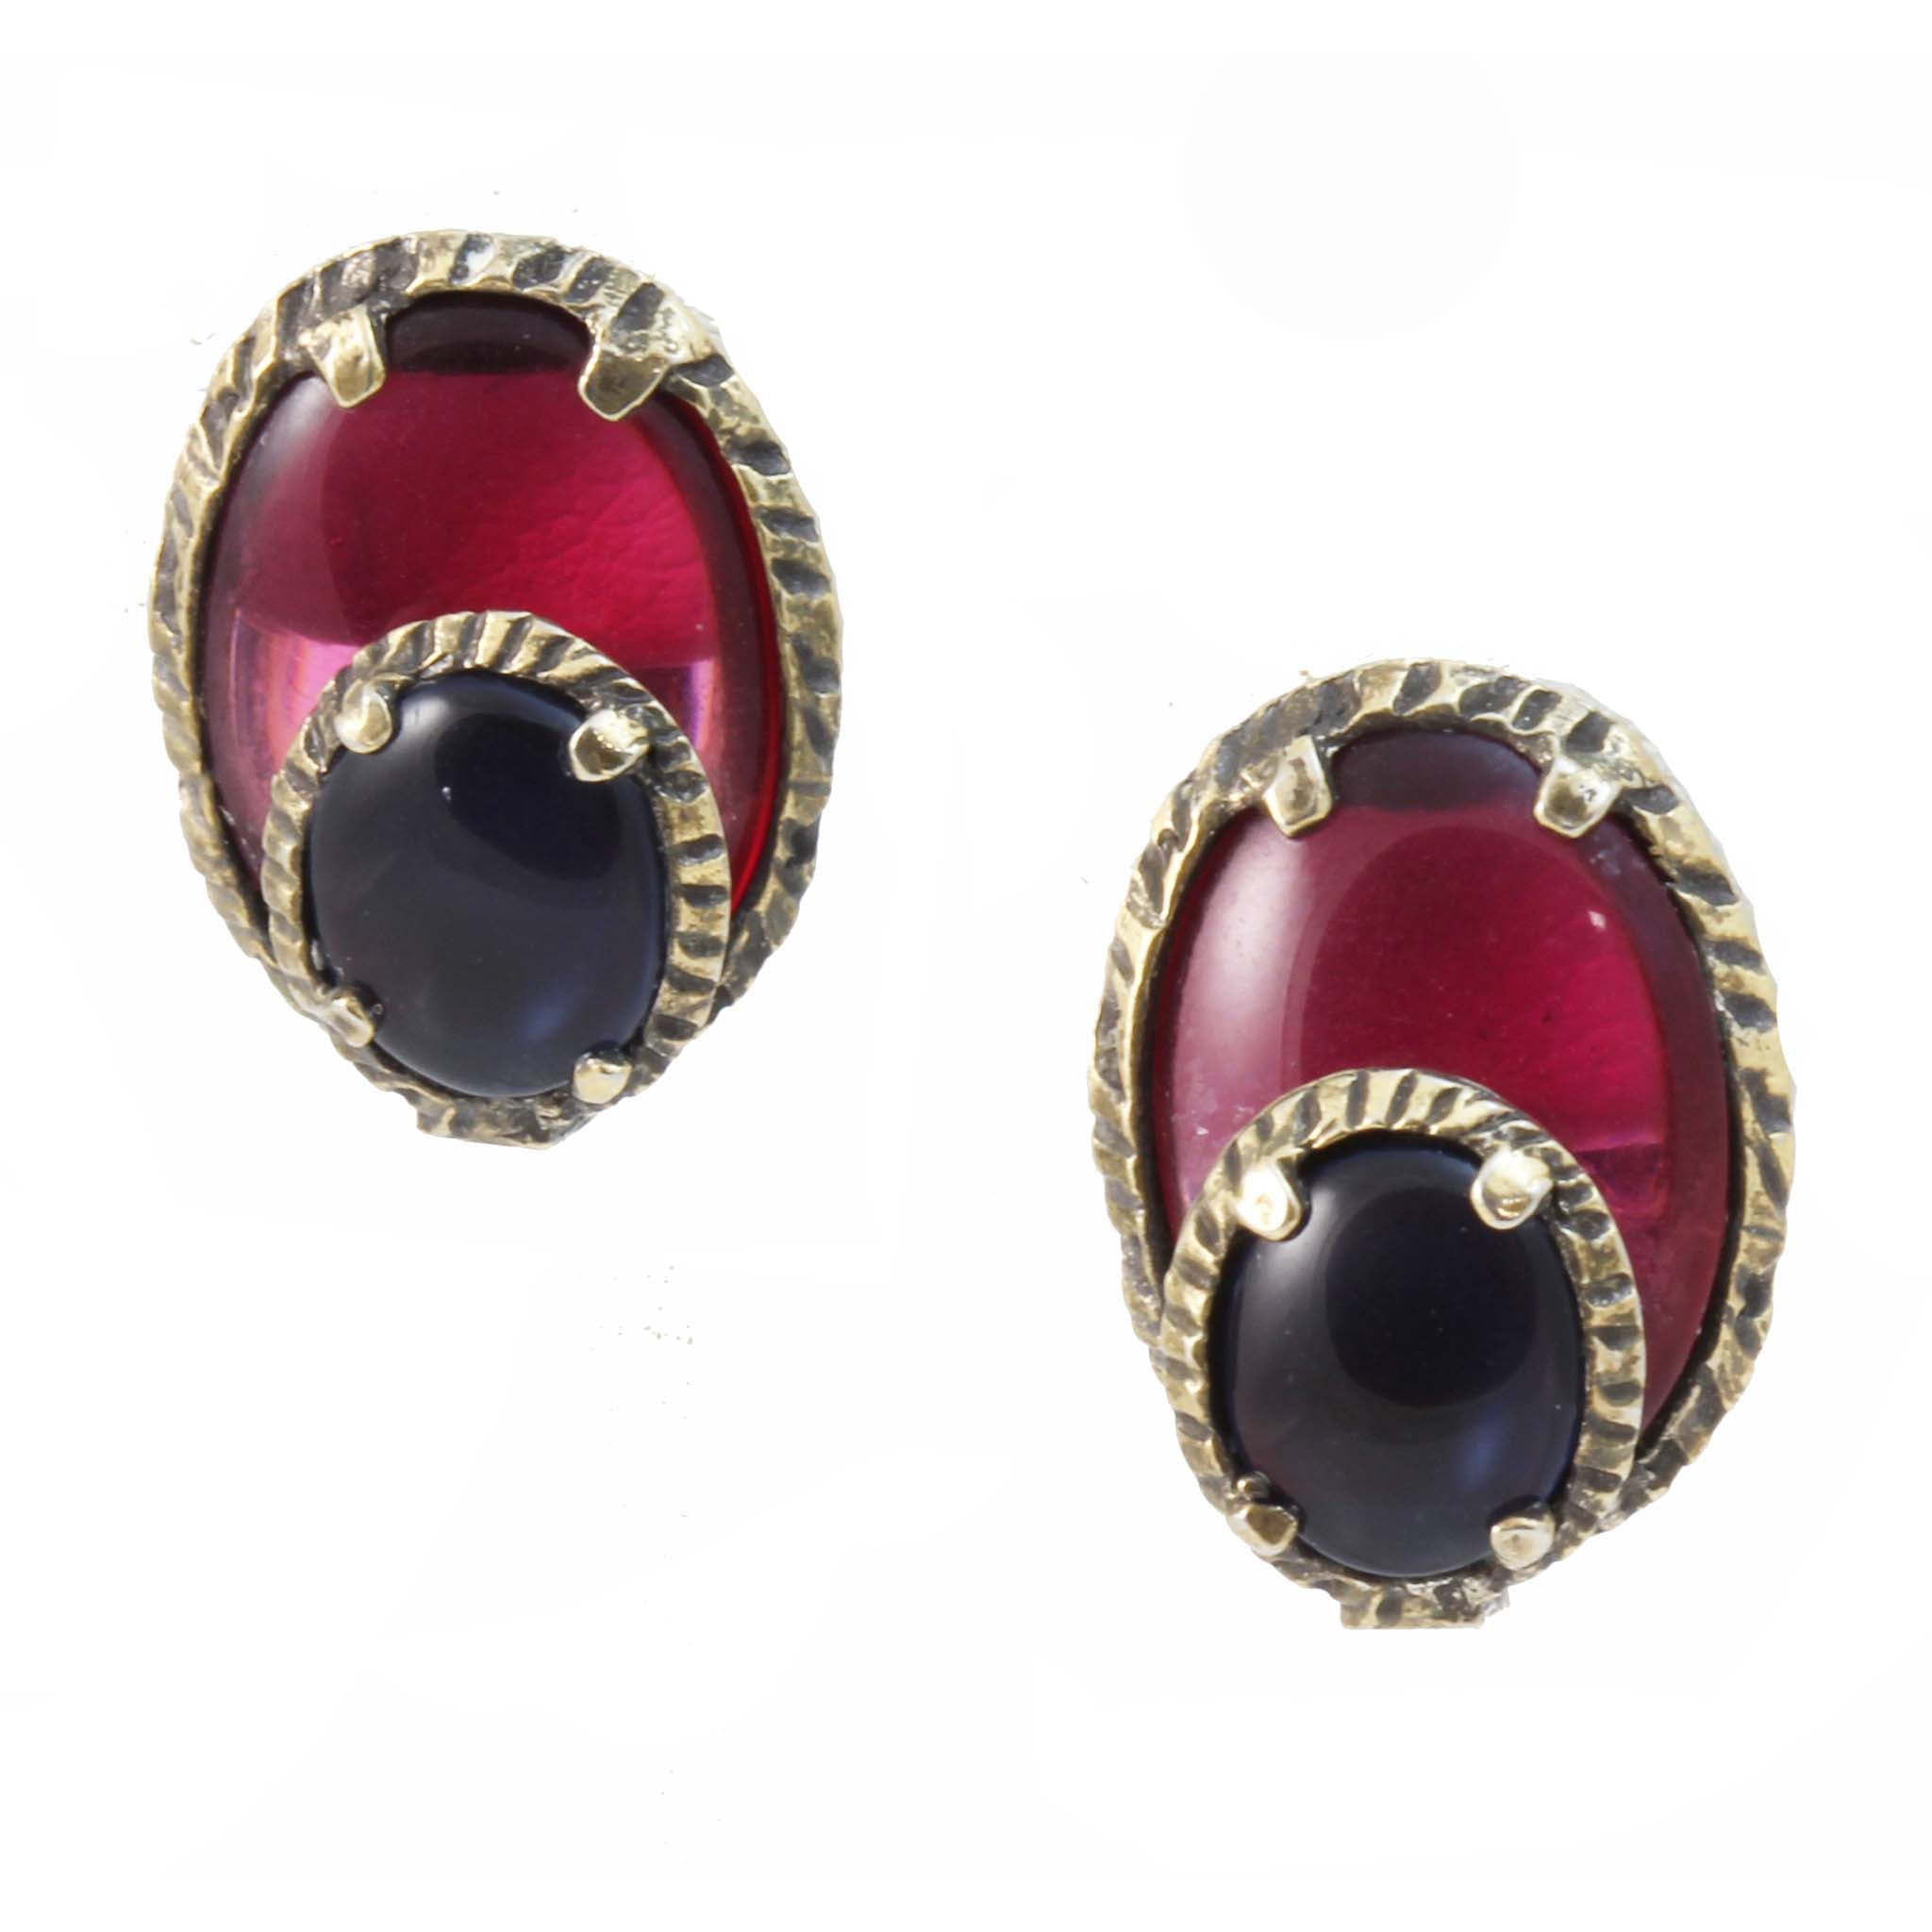 Trifari Renaissance Collection Jewel Tones Earrings Front